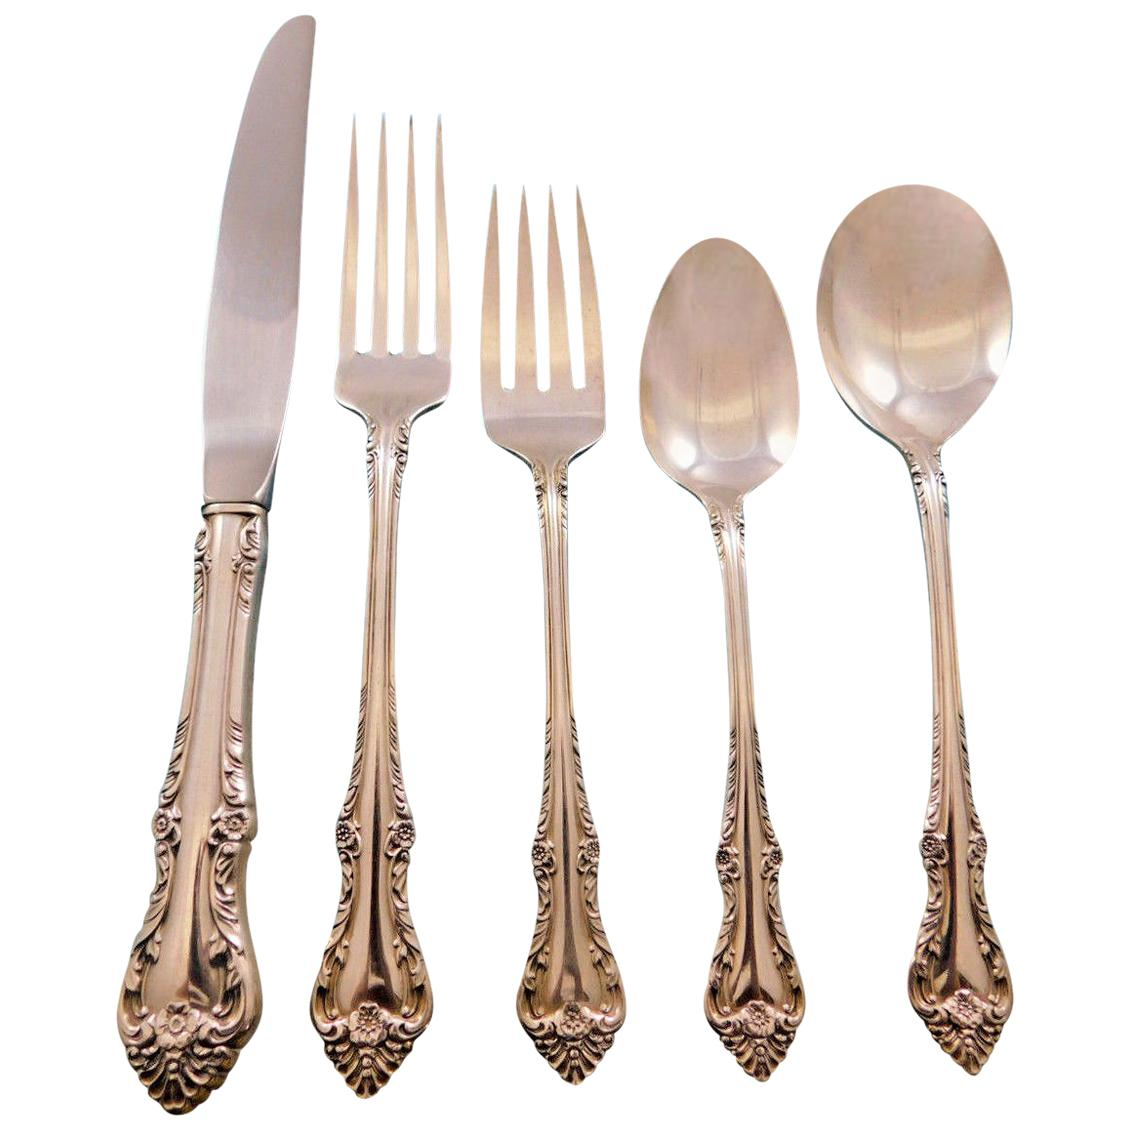 Melbourne by Oneida Sterling Silver Flatware Set for 6 Service 30 Pieces